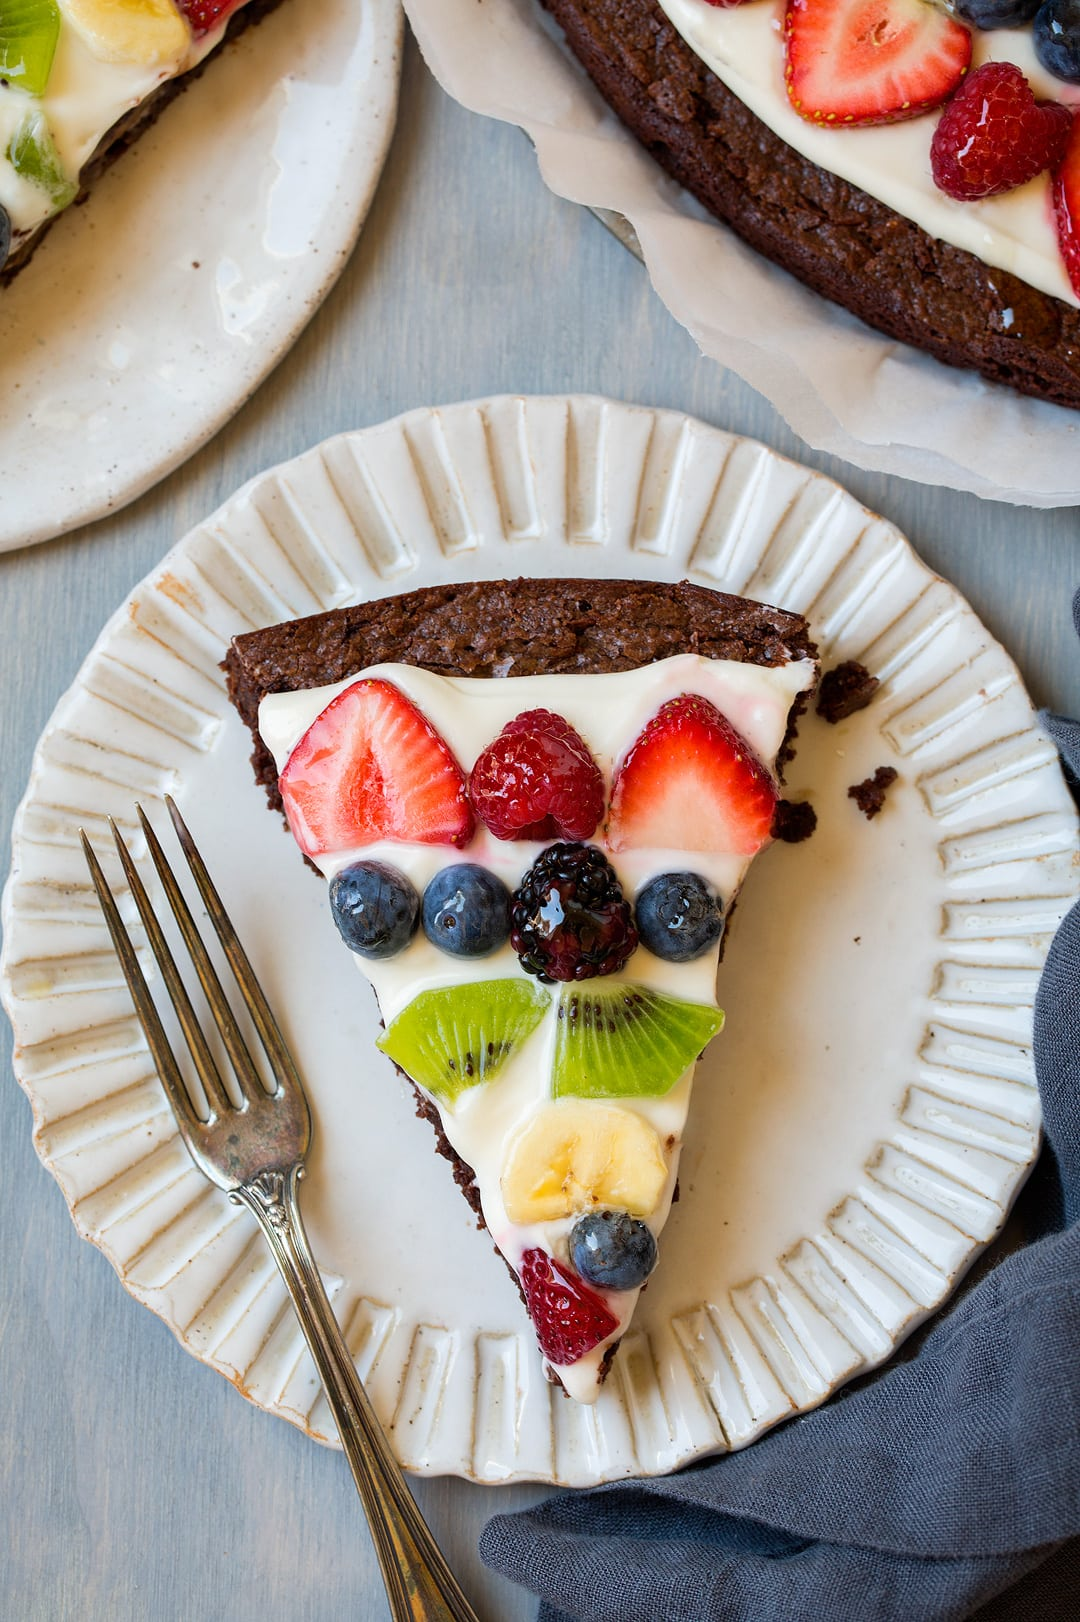 Brownie fruit pizza slice on a white plate, sitting on a blue wooden surface.